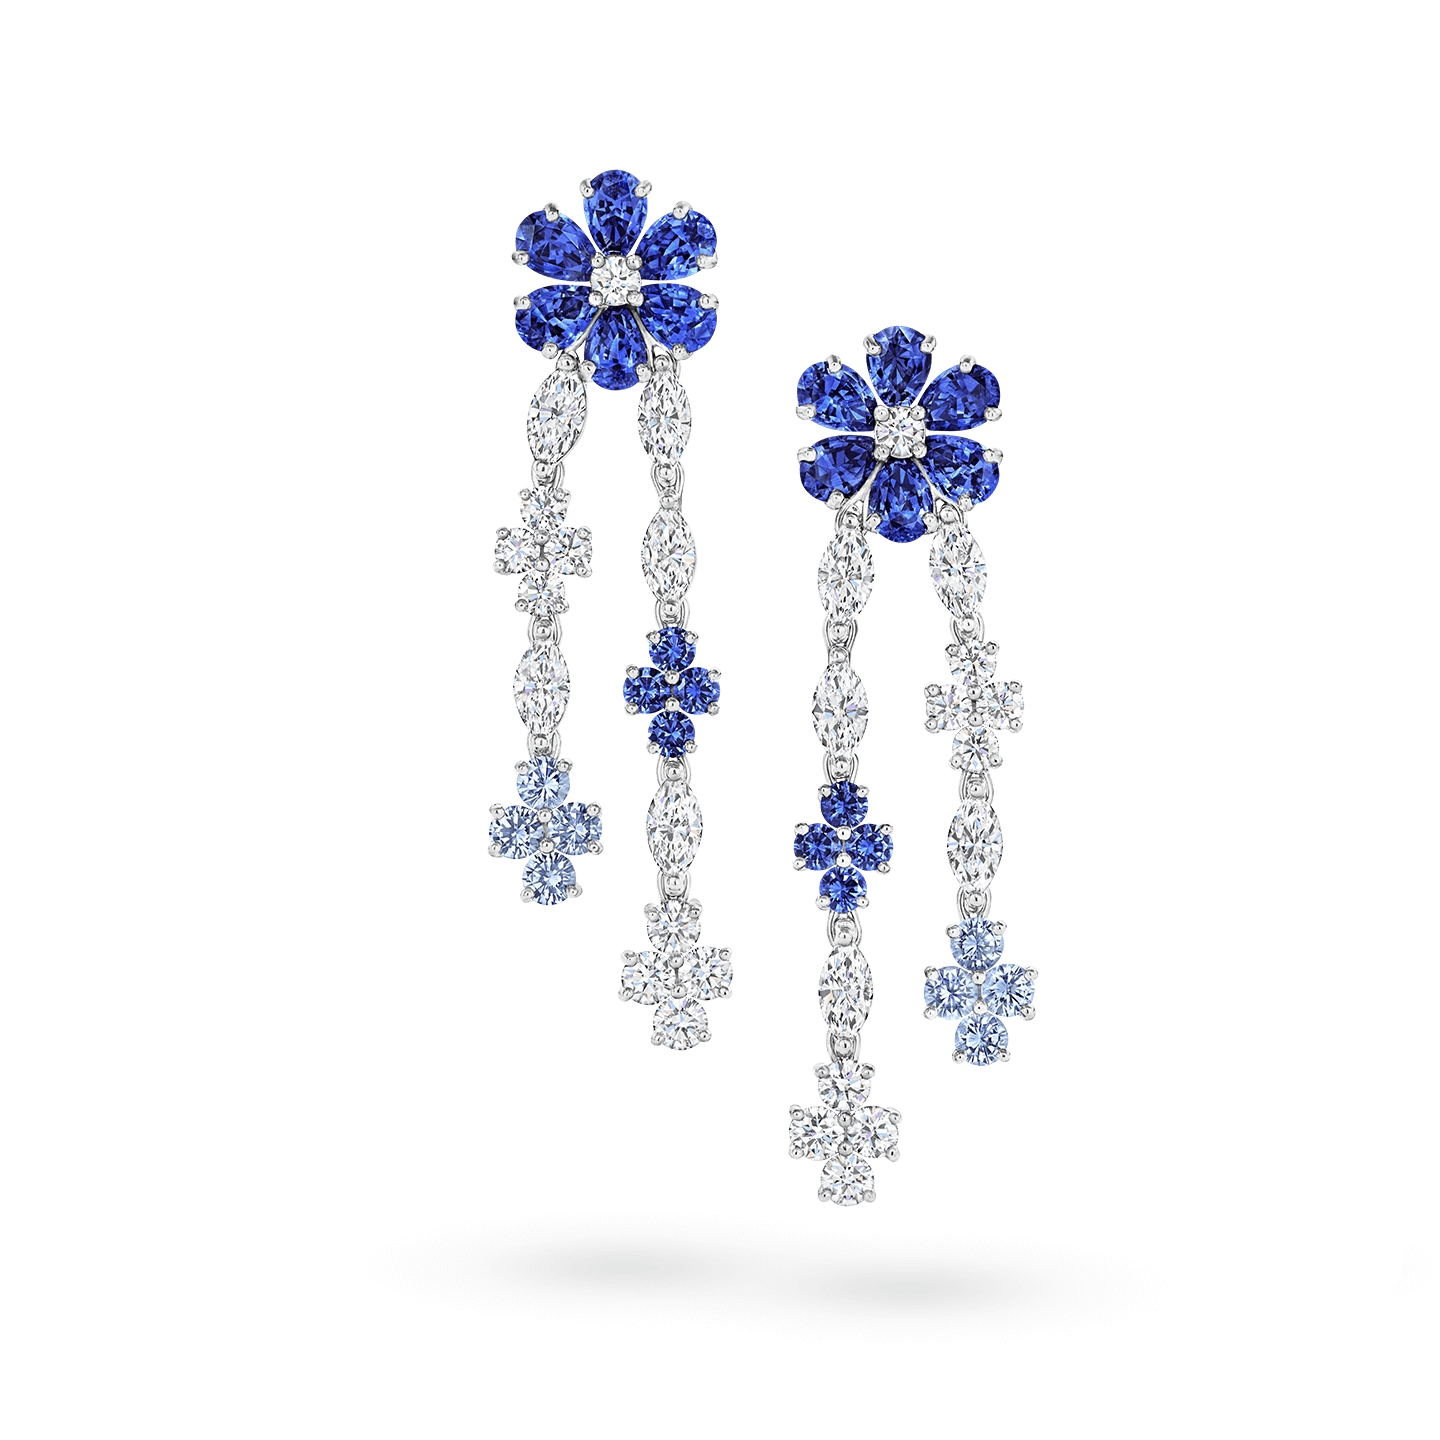 Forget-Me-Not Sapphire and Diamond Drop Earrings, Product Image 1